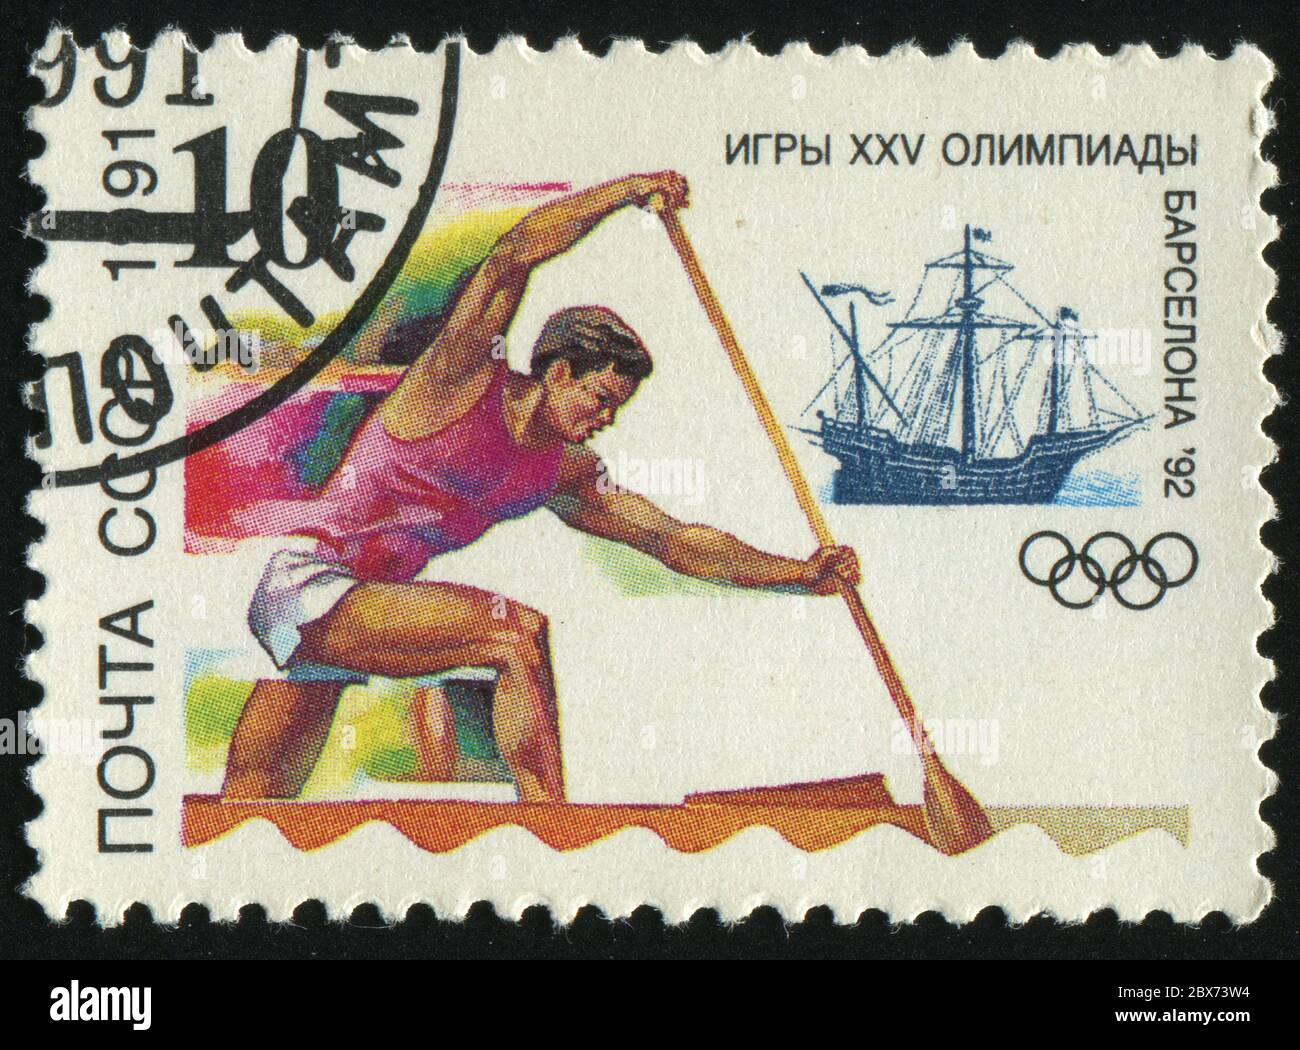 RUSSIA - CIRCA 1991: stamp printed by Russia, shows 1992 Summer Olympic Games, Barcelona, canoeing, circa 1991. Stock Photo